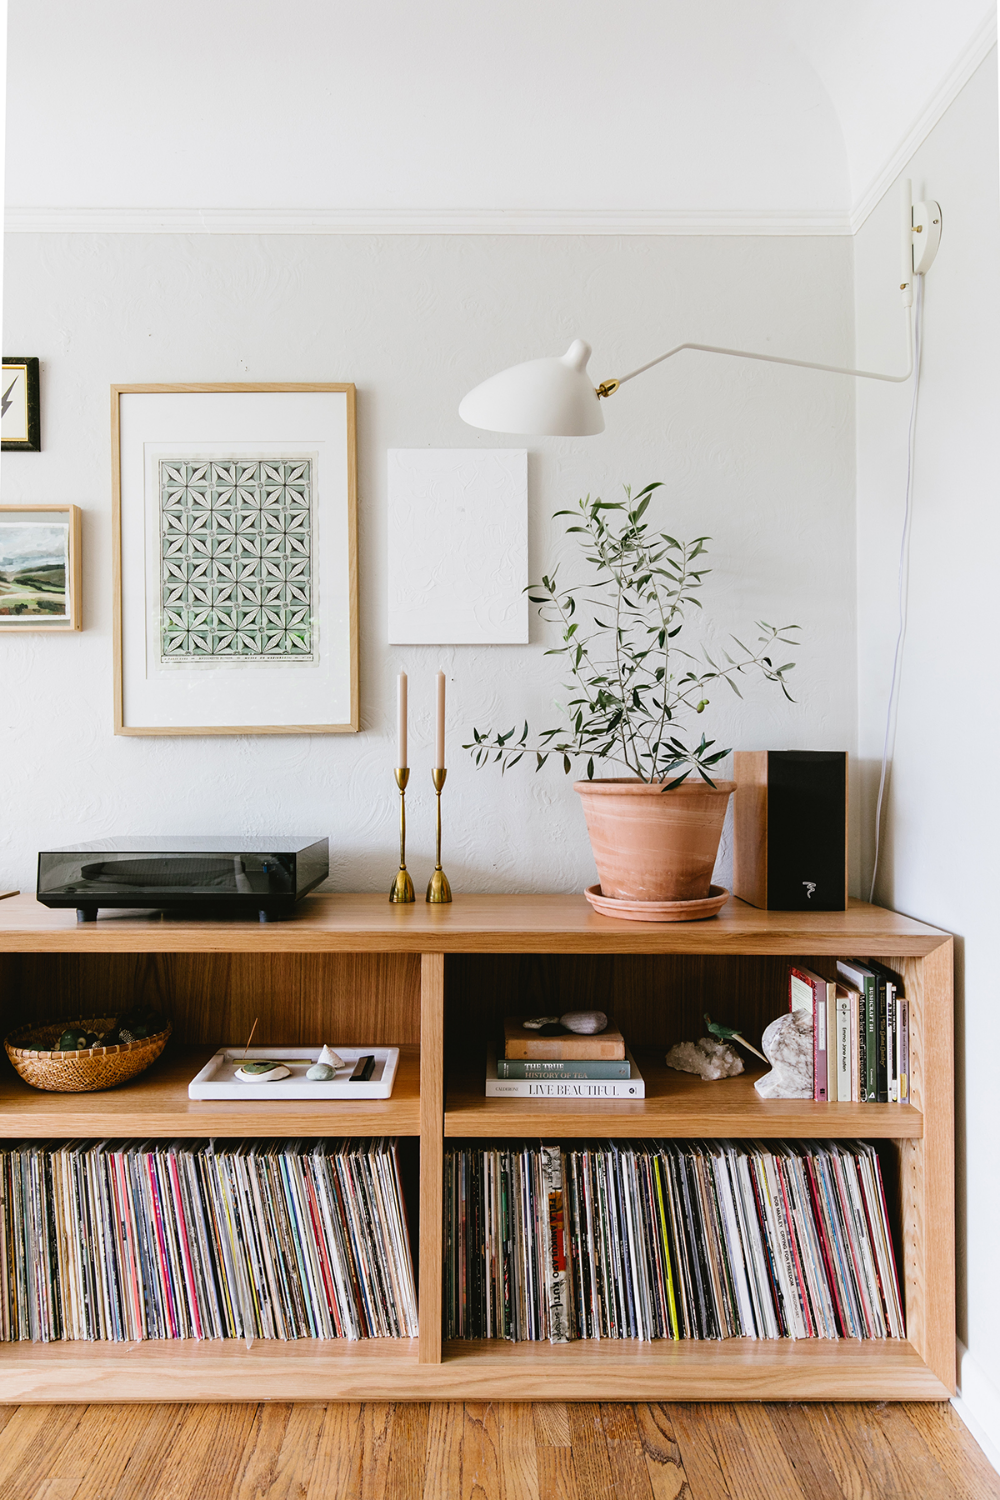 How We Solved a Major Design Dilemma with Custom Shelving (and Our Latest Living Room Reveal